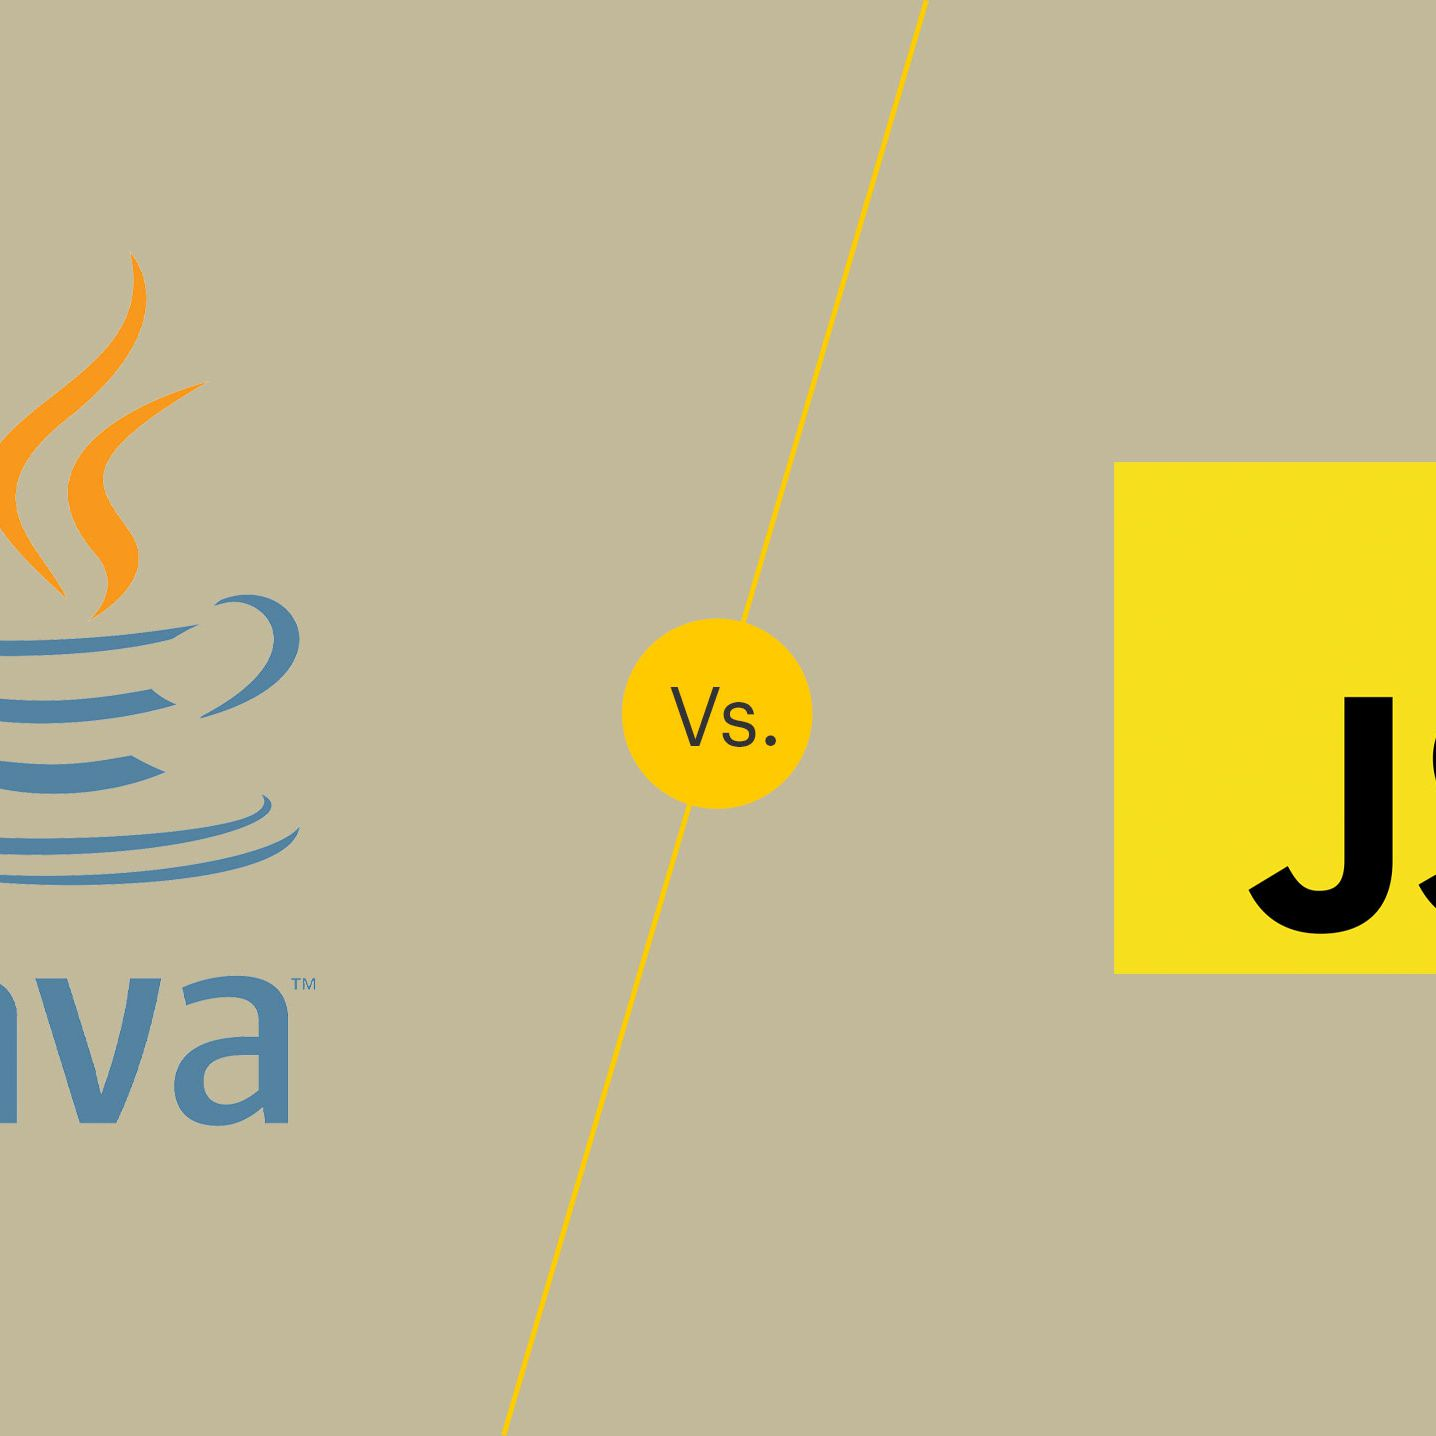 Java vs. JavaScript: What's the Difference?